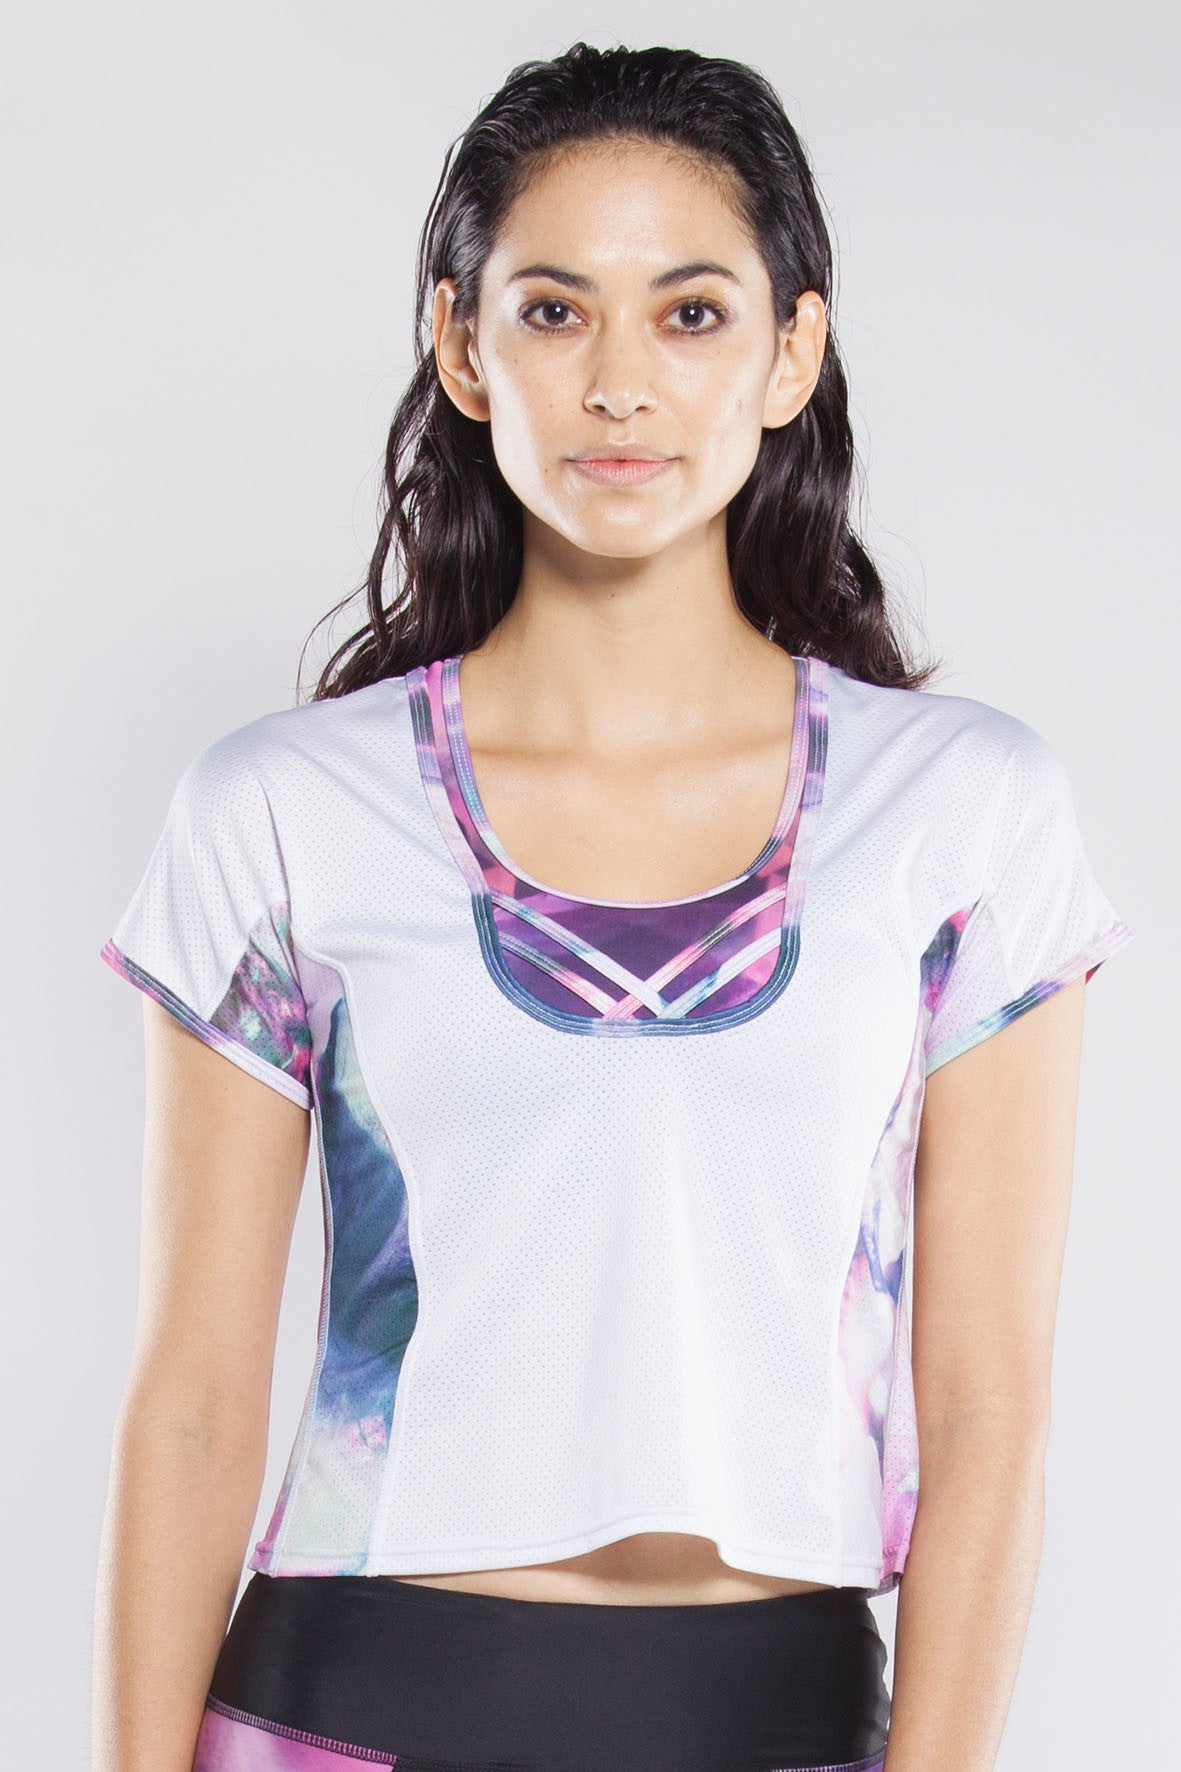 Top - Lace up top - Miss Runner - Short sleeve - workout